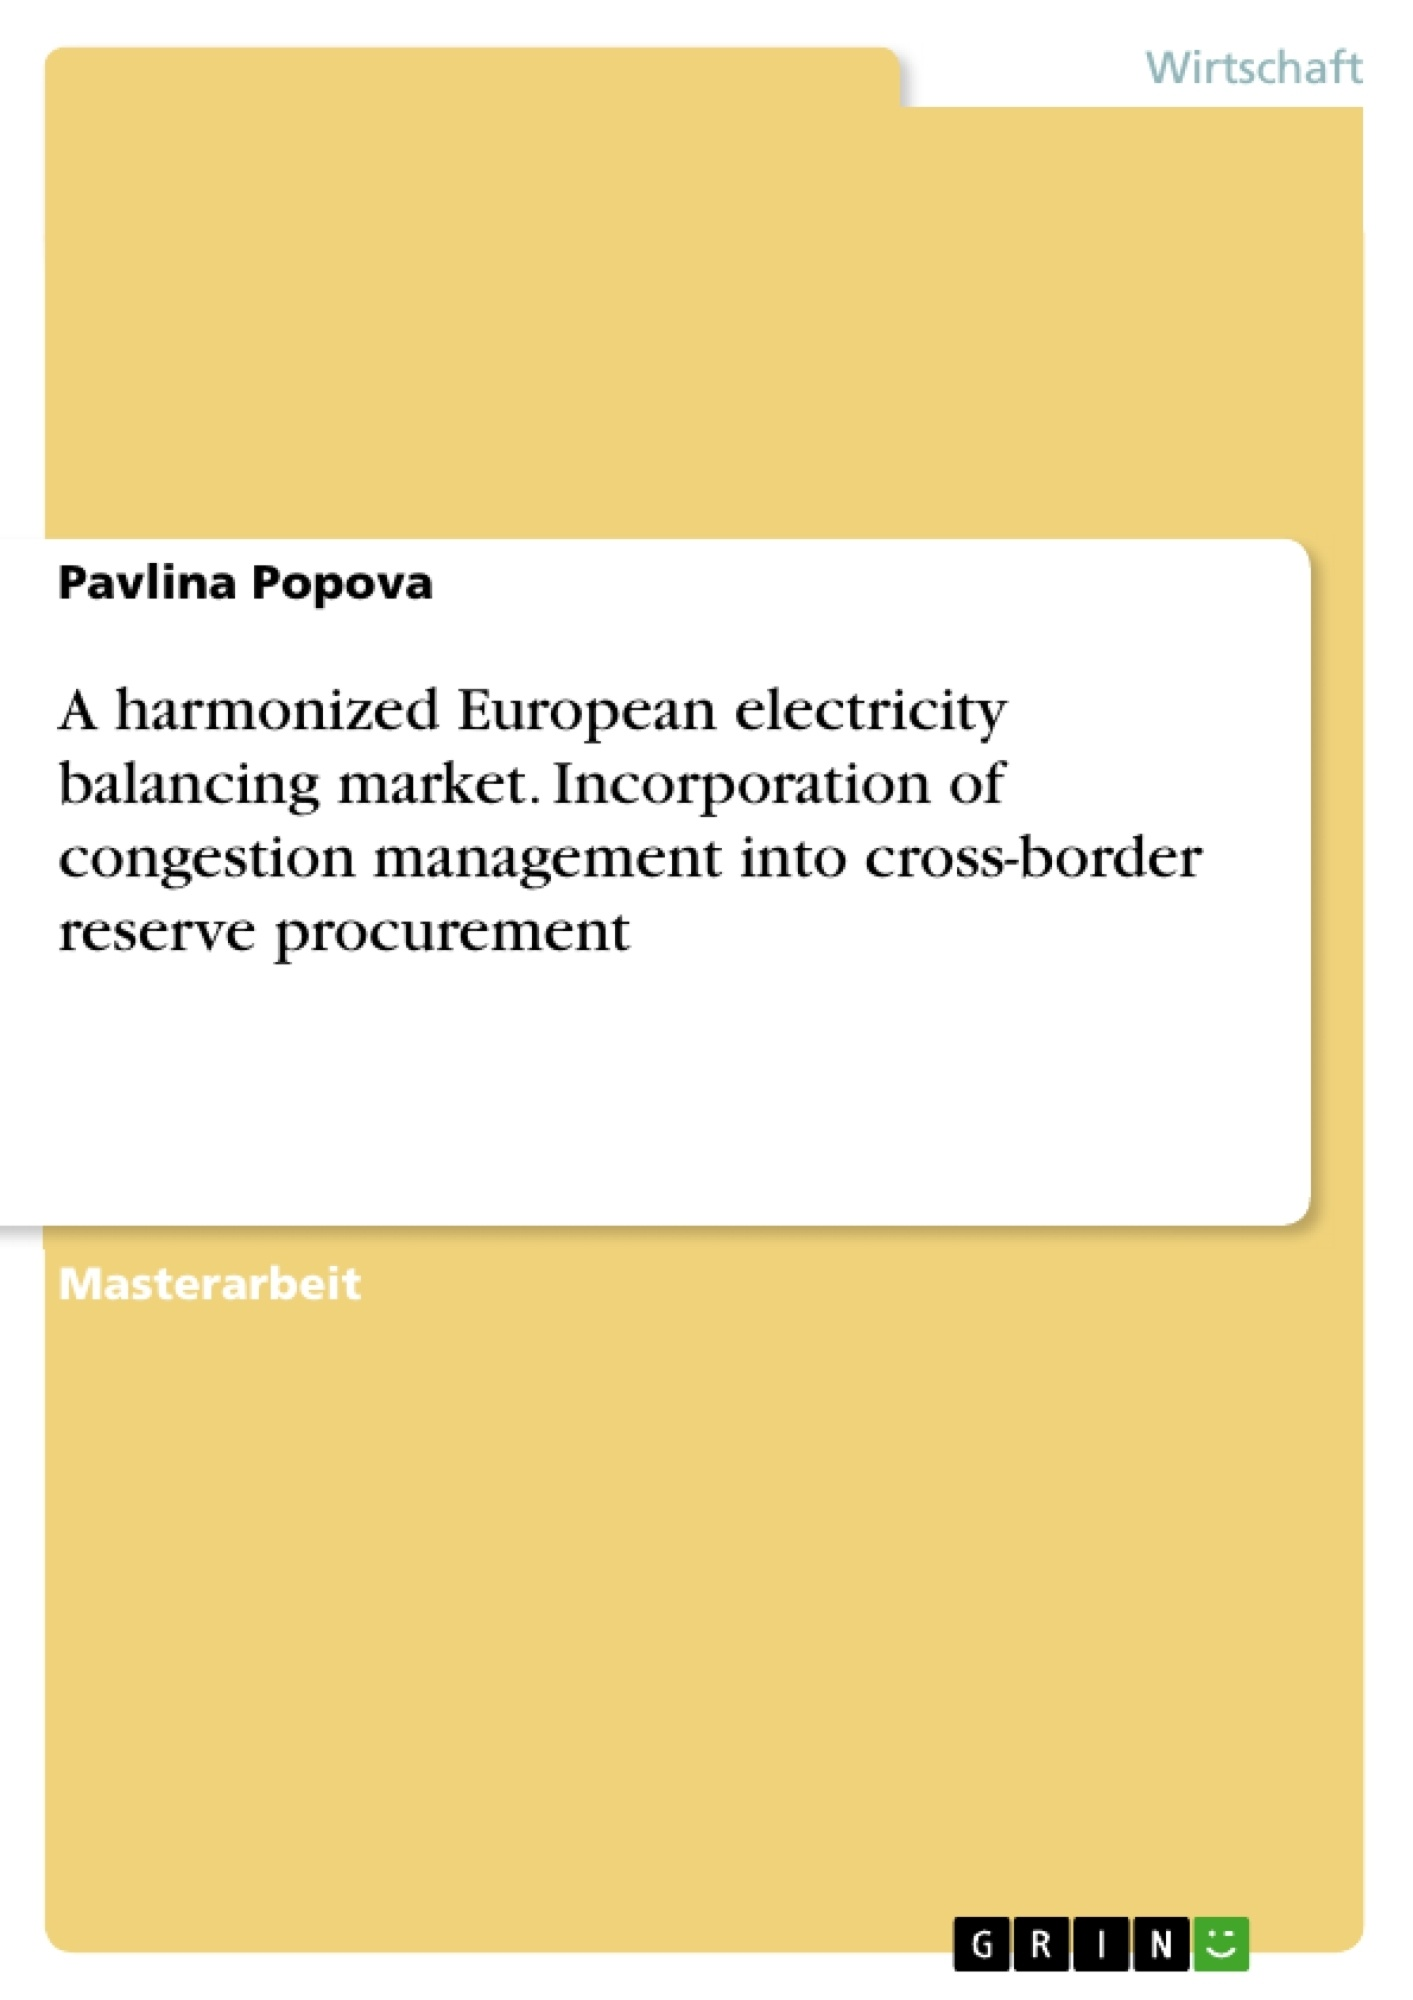 Titel: A harmonized European electricity balancing market. Incorporation of congestion management into cross-border reserve procurement